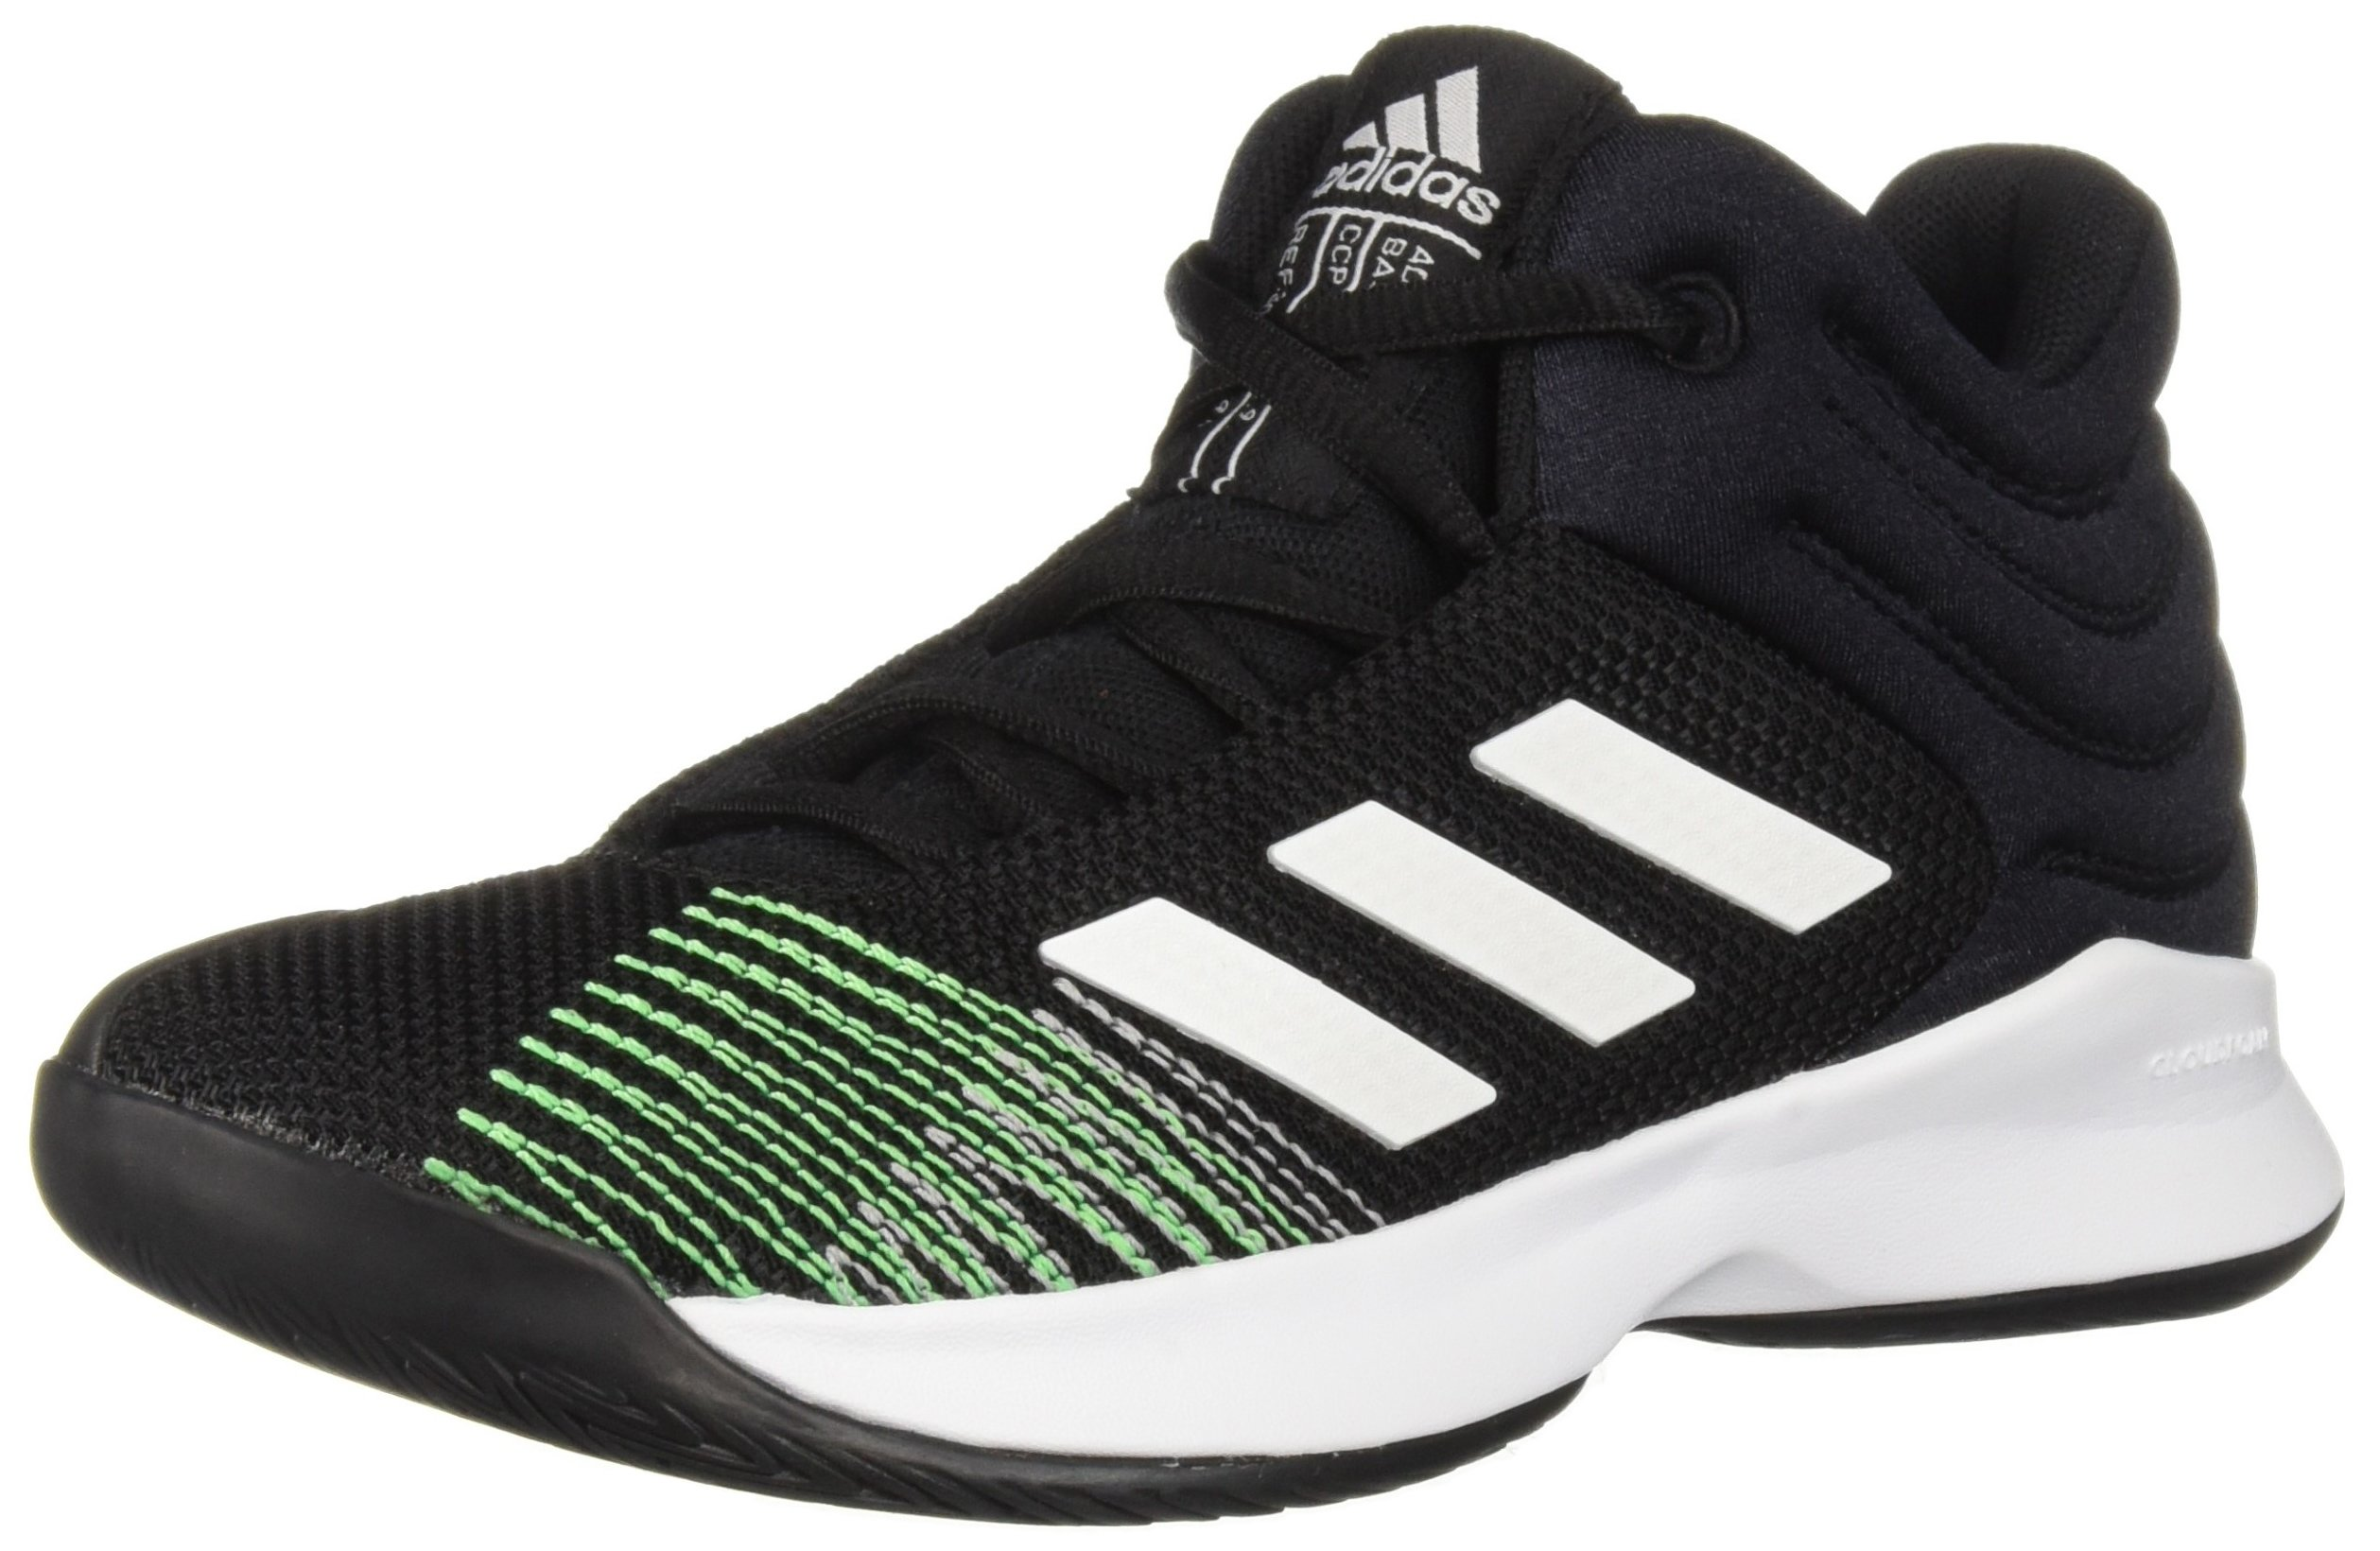 5d8cdce4 adidas Unisex Pro Spark 2018 Basketball Shoe, Black/White/Shock Lime, 2.5 M  US Little Kid